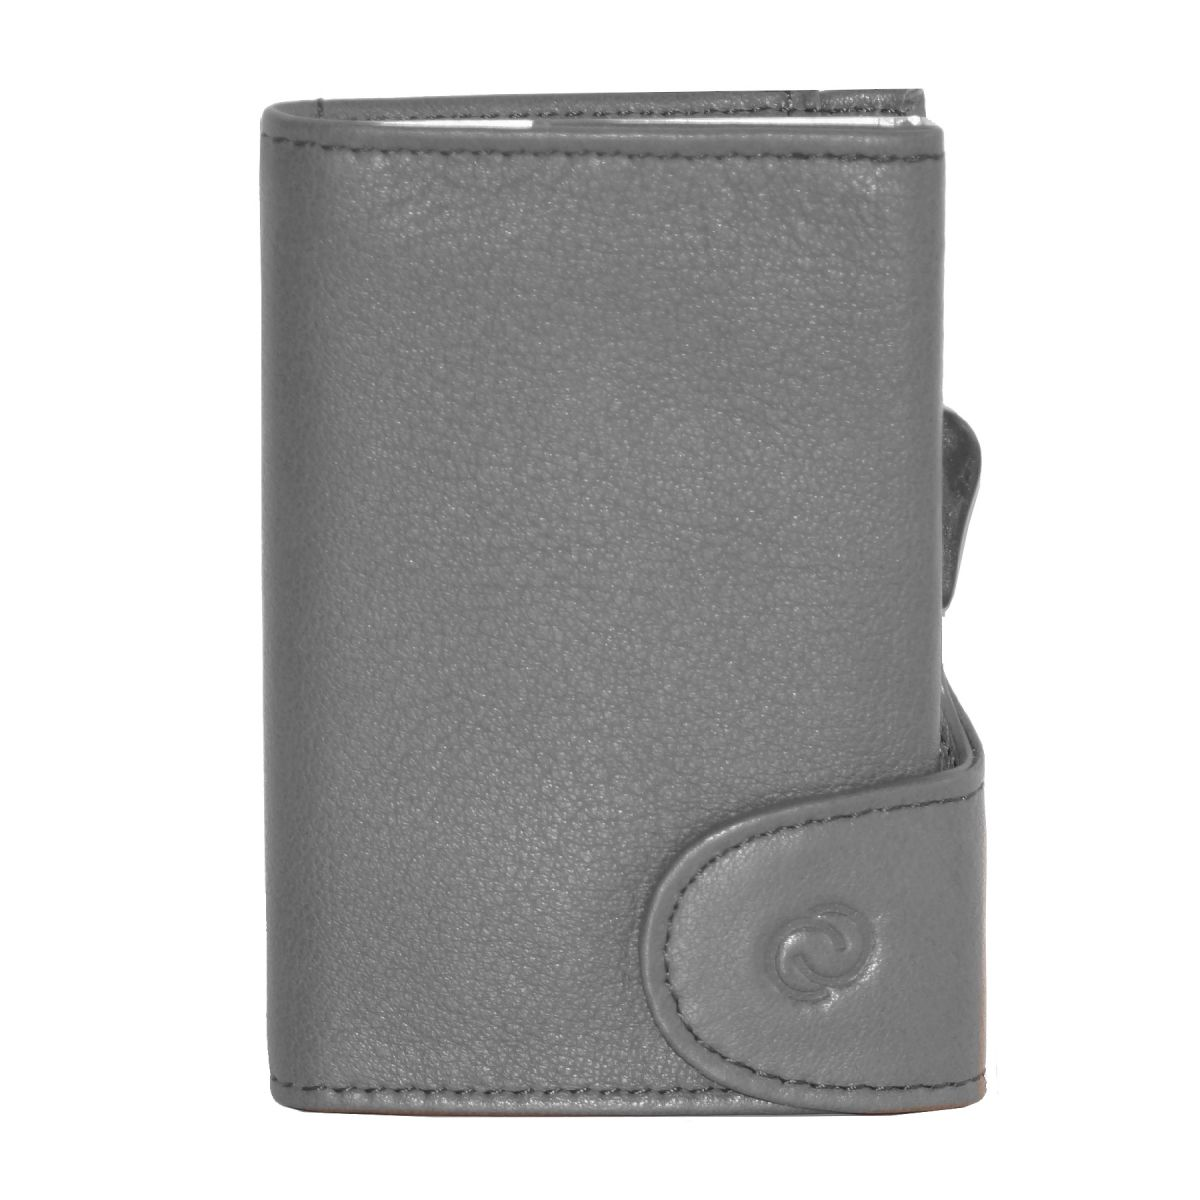 C-Secure Aluminum Card Holder with PU Leather - Grey